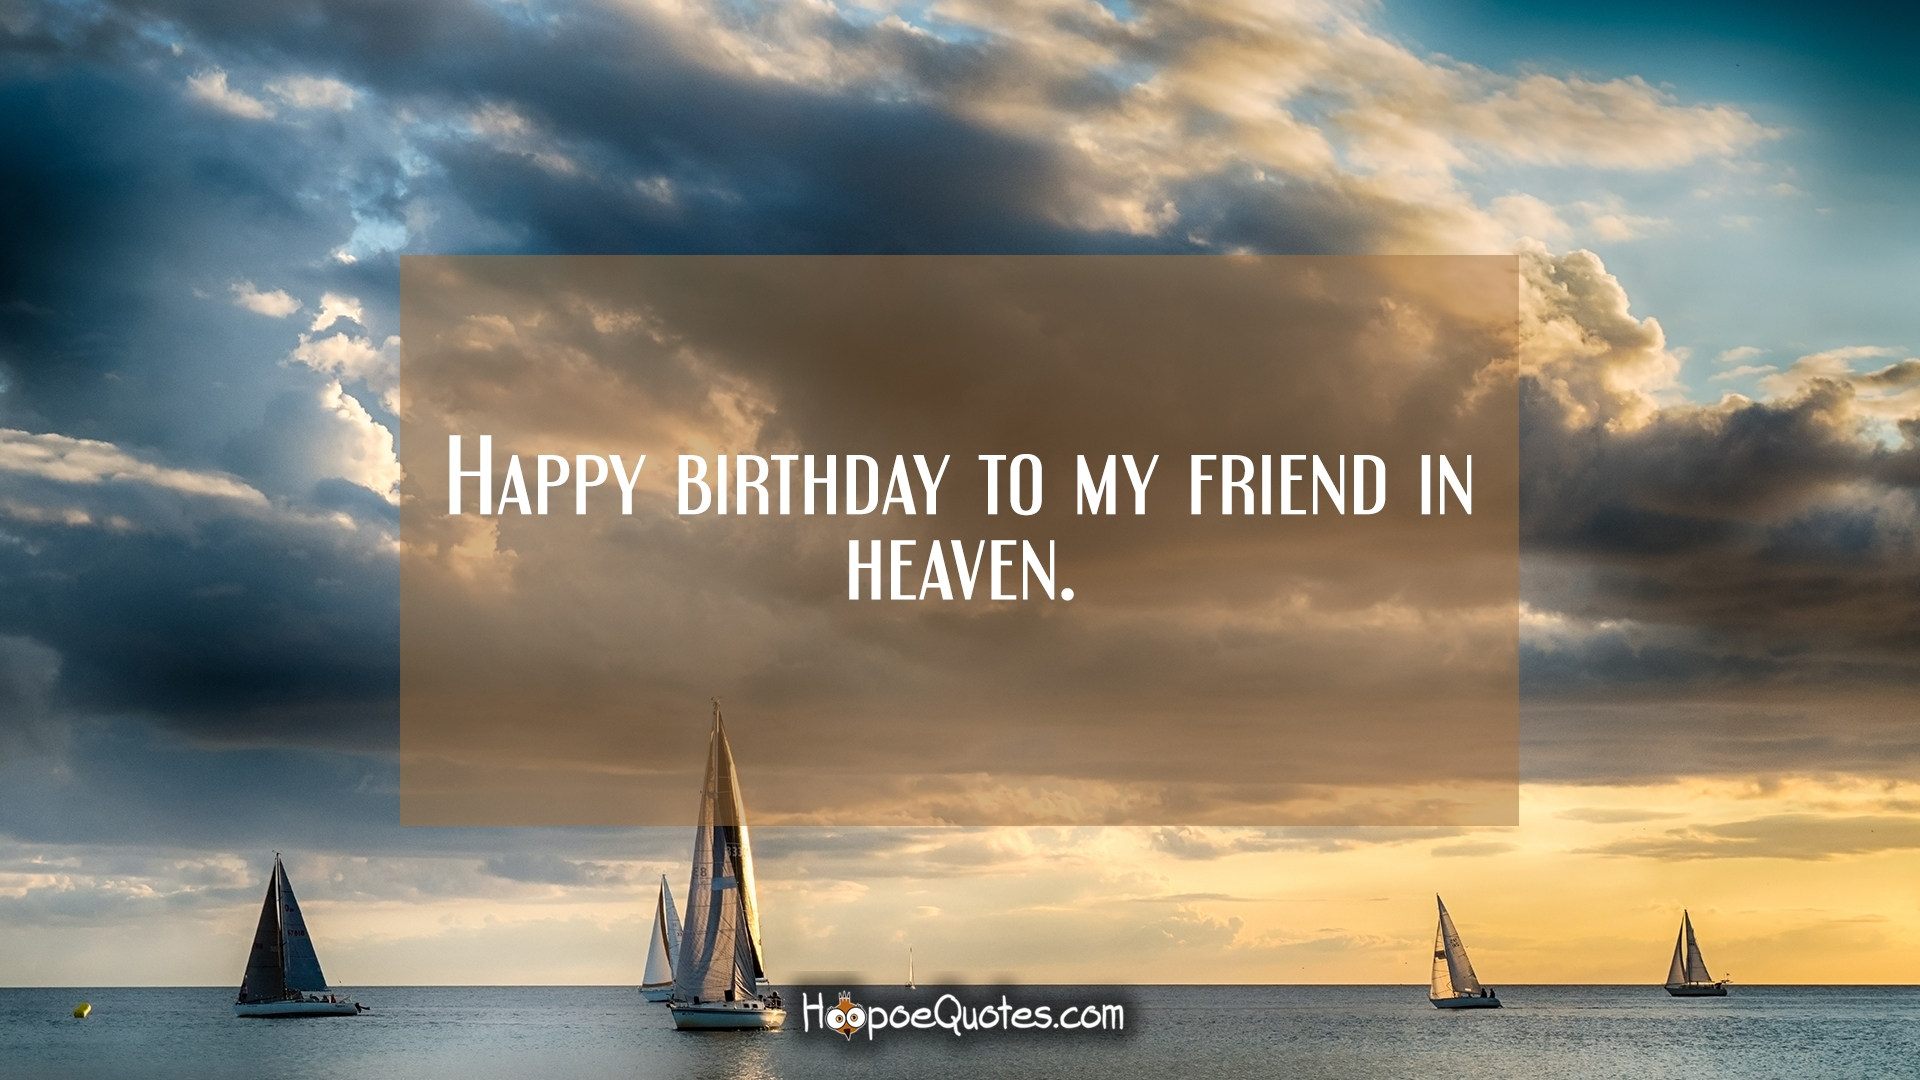 Happy Birthday To My Friend In Heaven Hoopoequotes